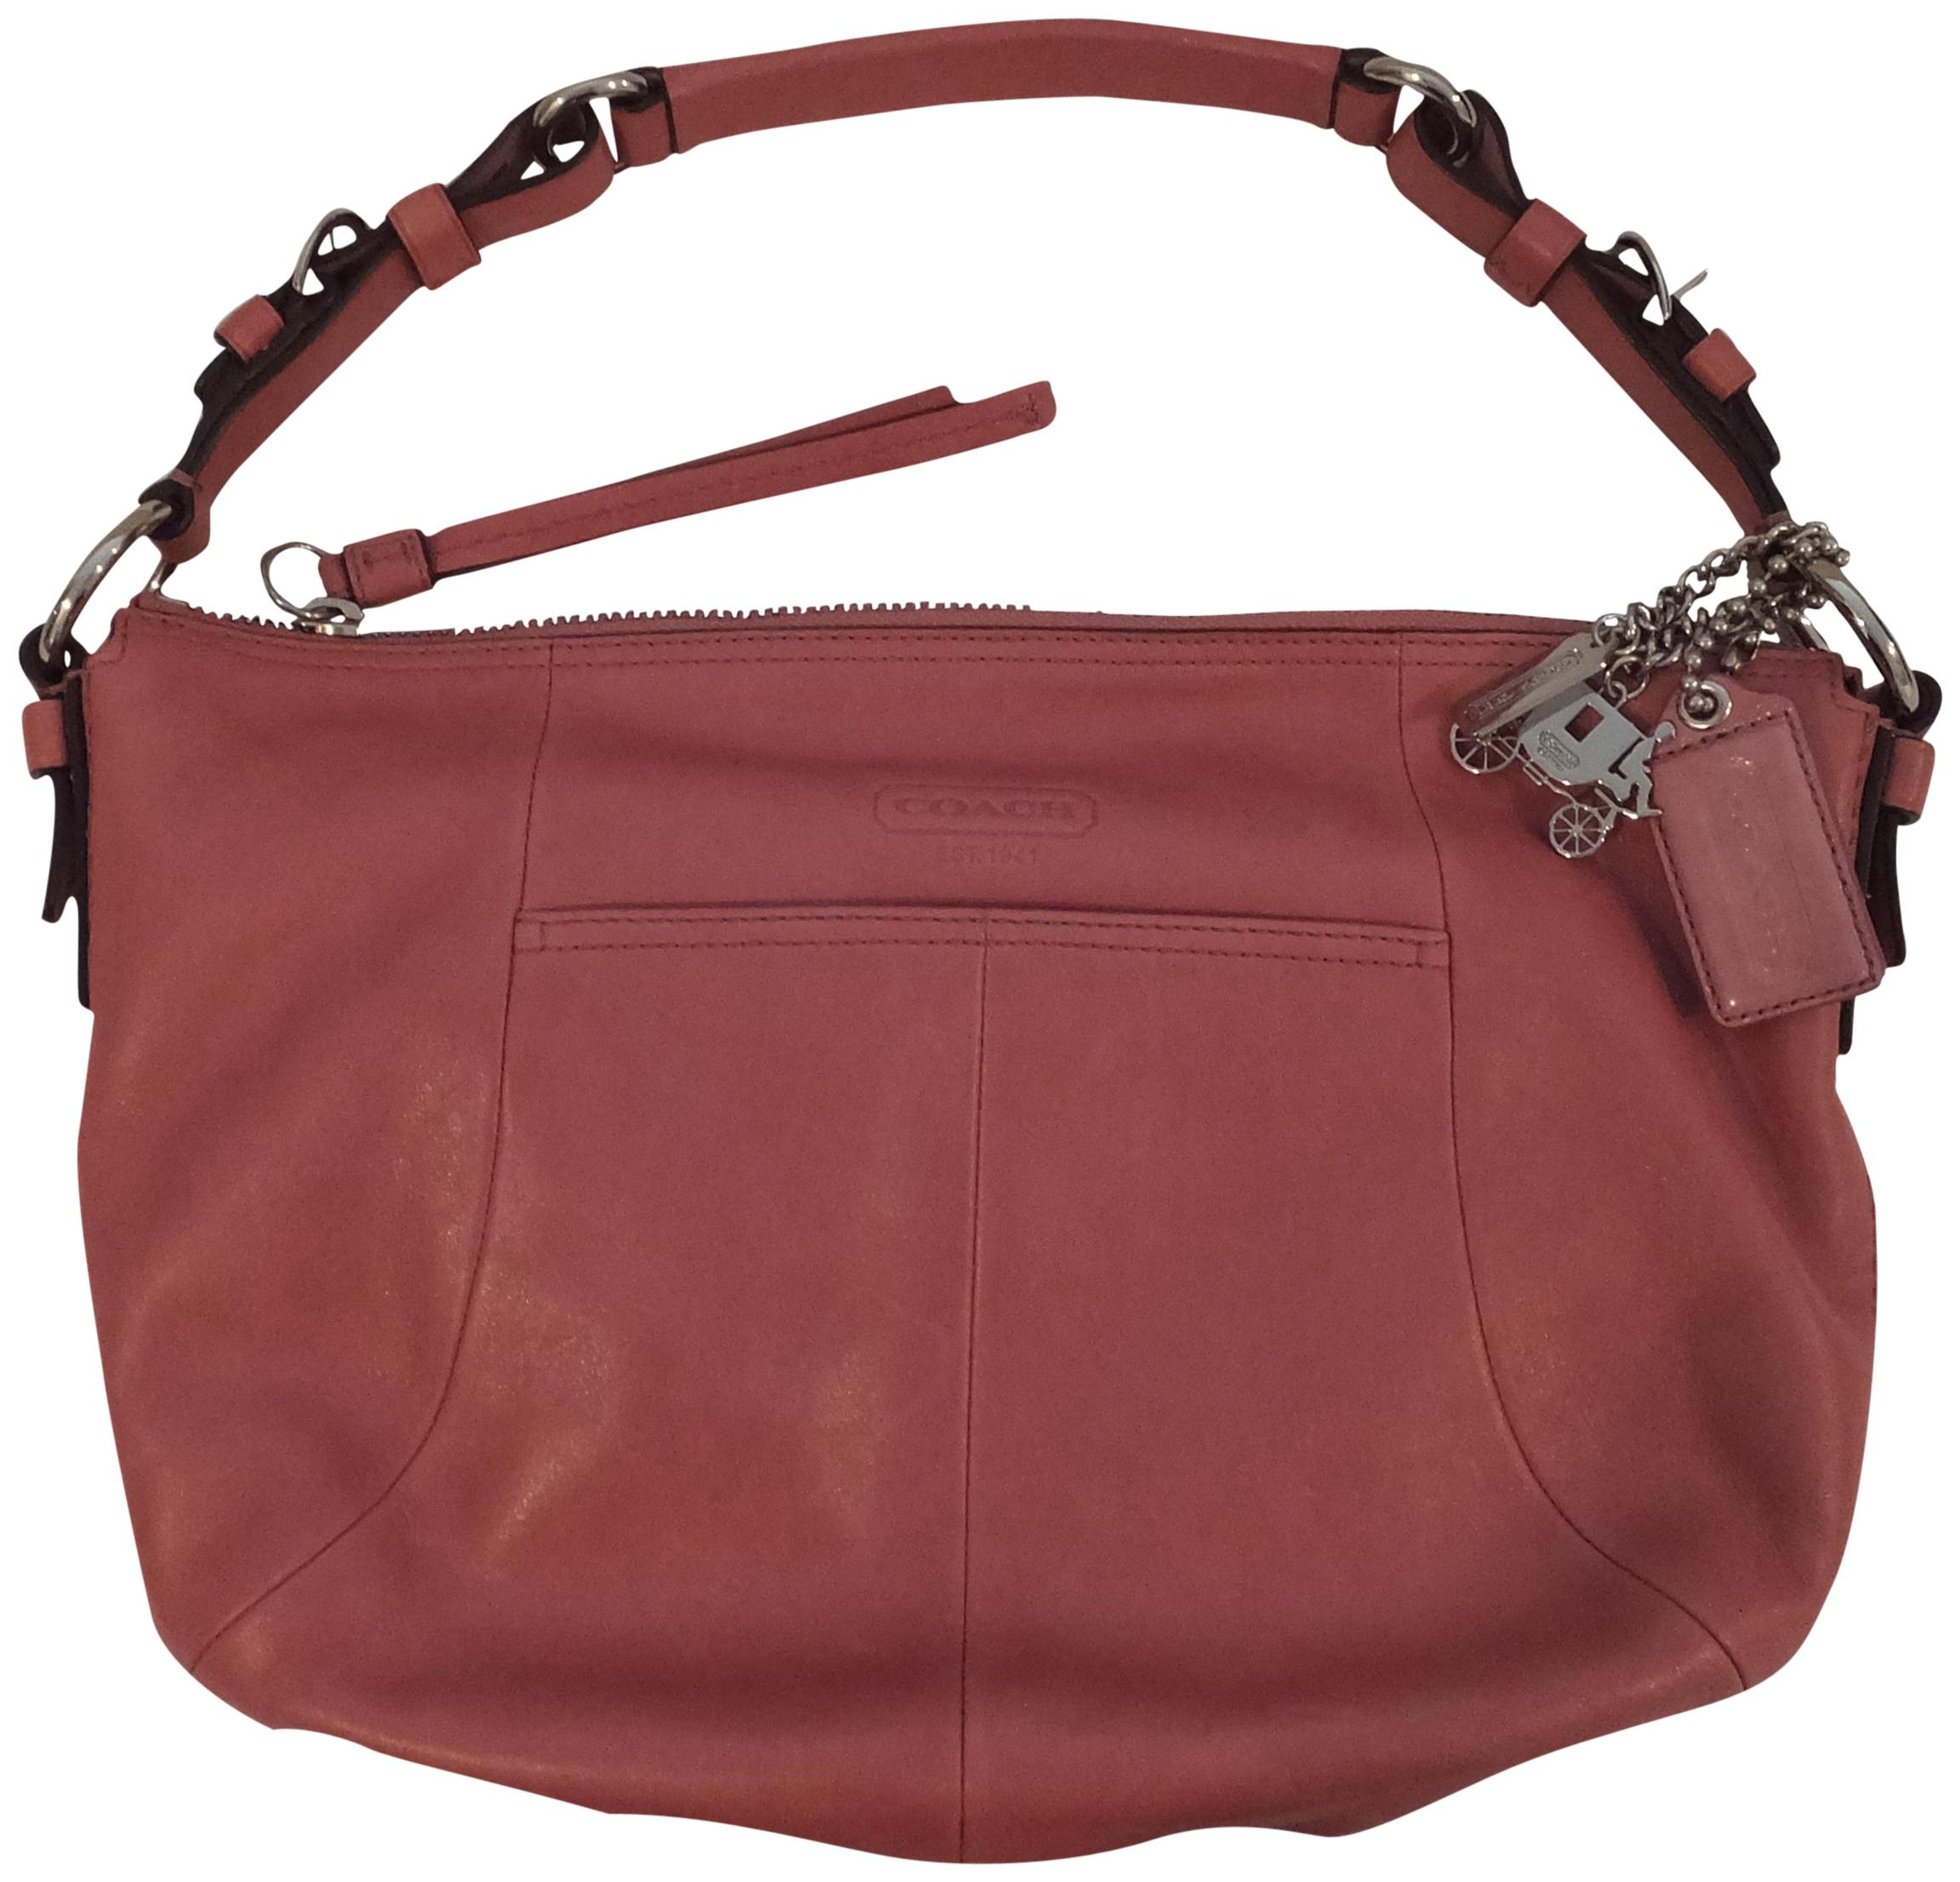 16c66d01ce ... czech coach classic dusty pink leather hobo bag tradesy 2acdc b8083